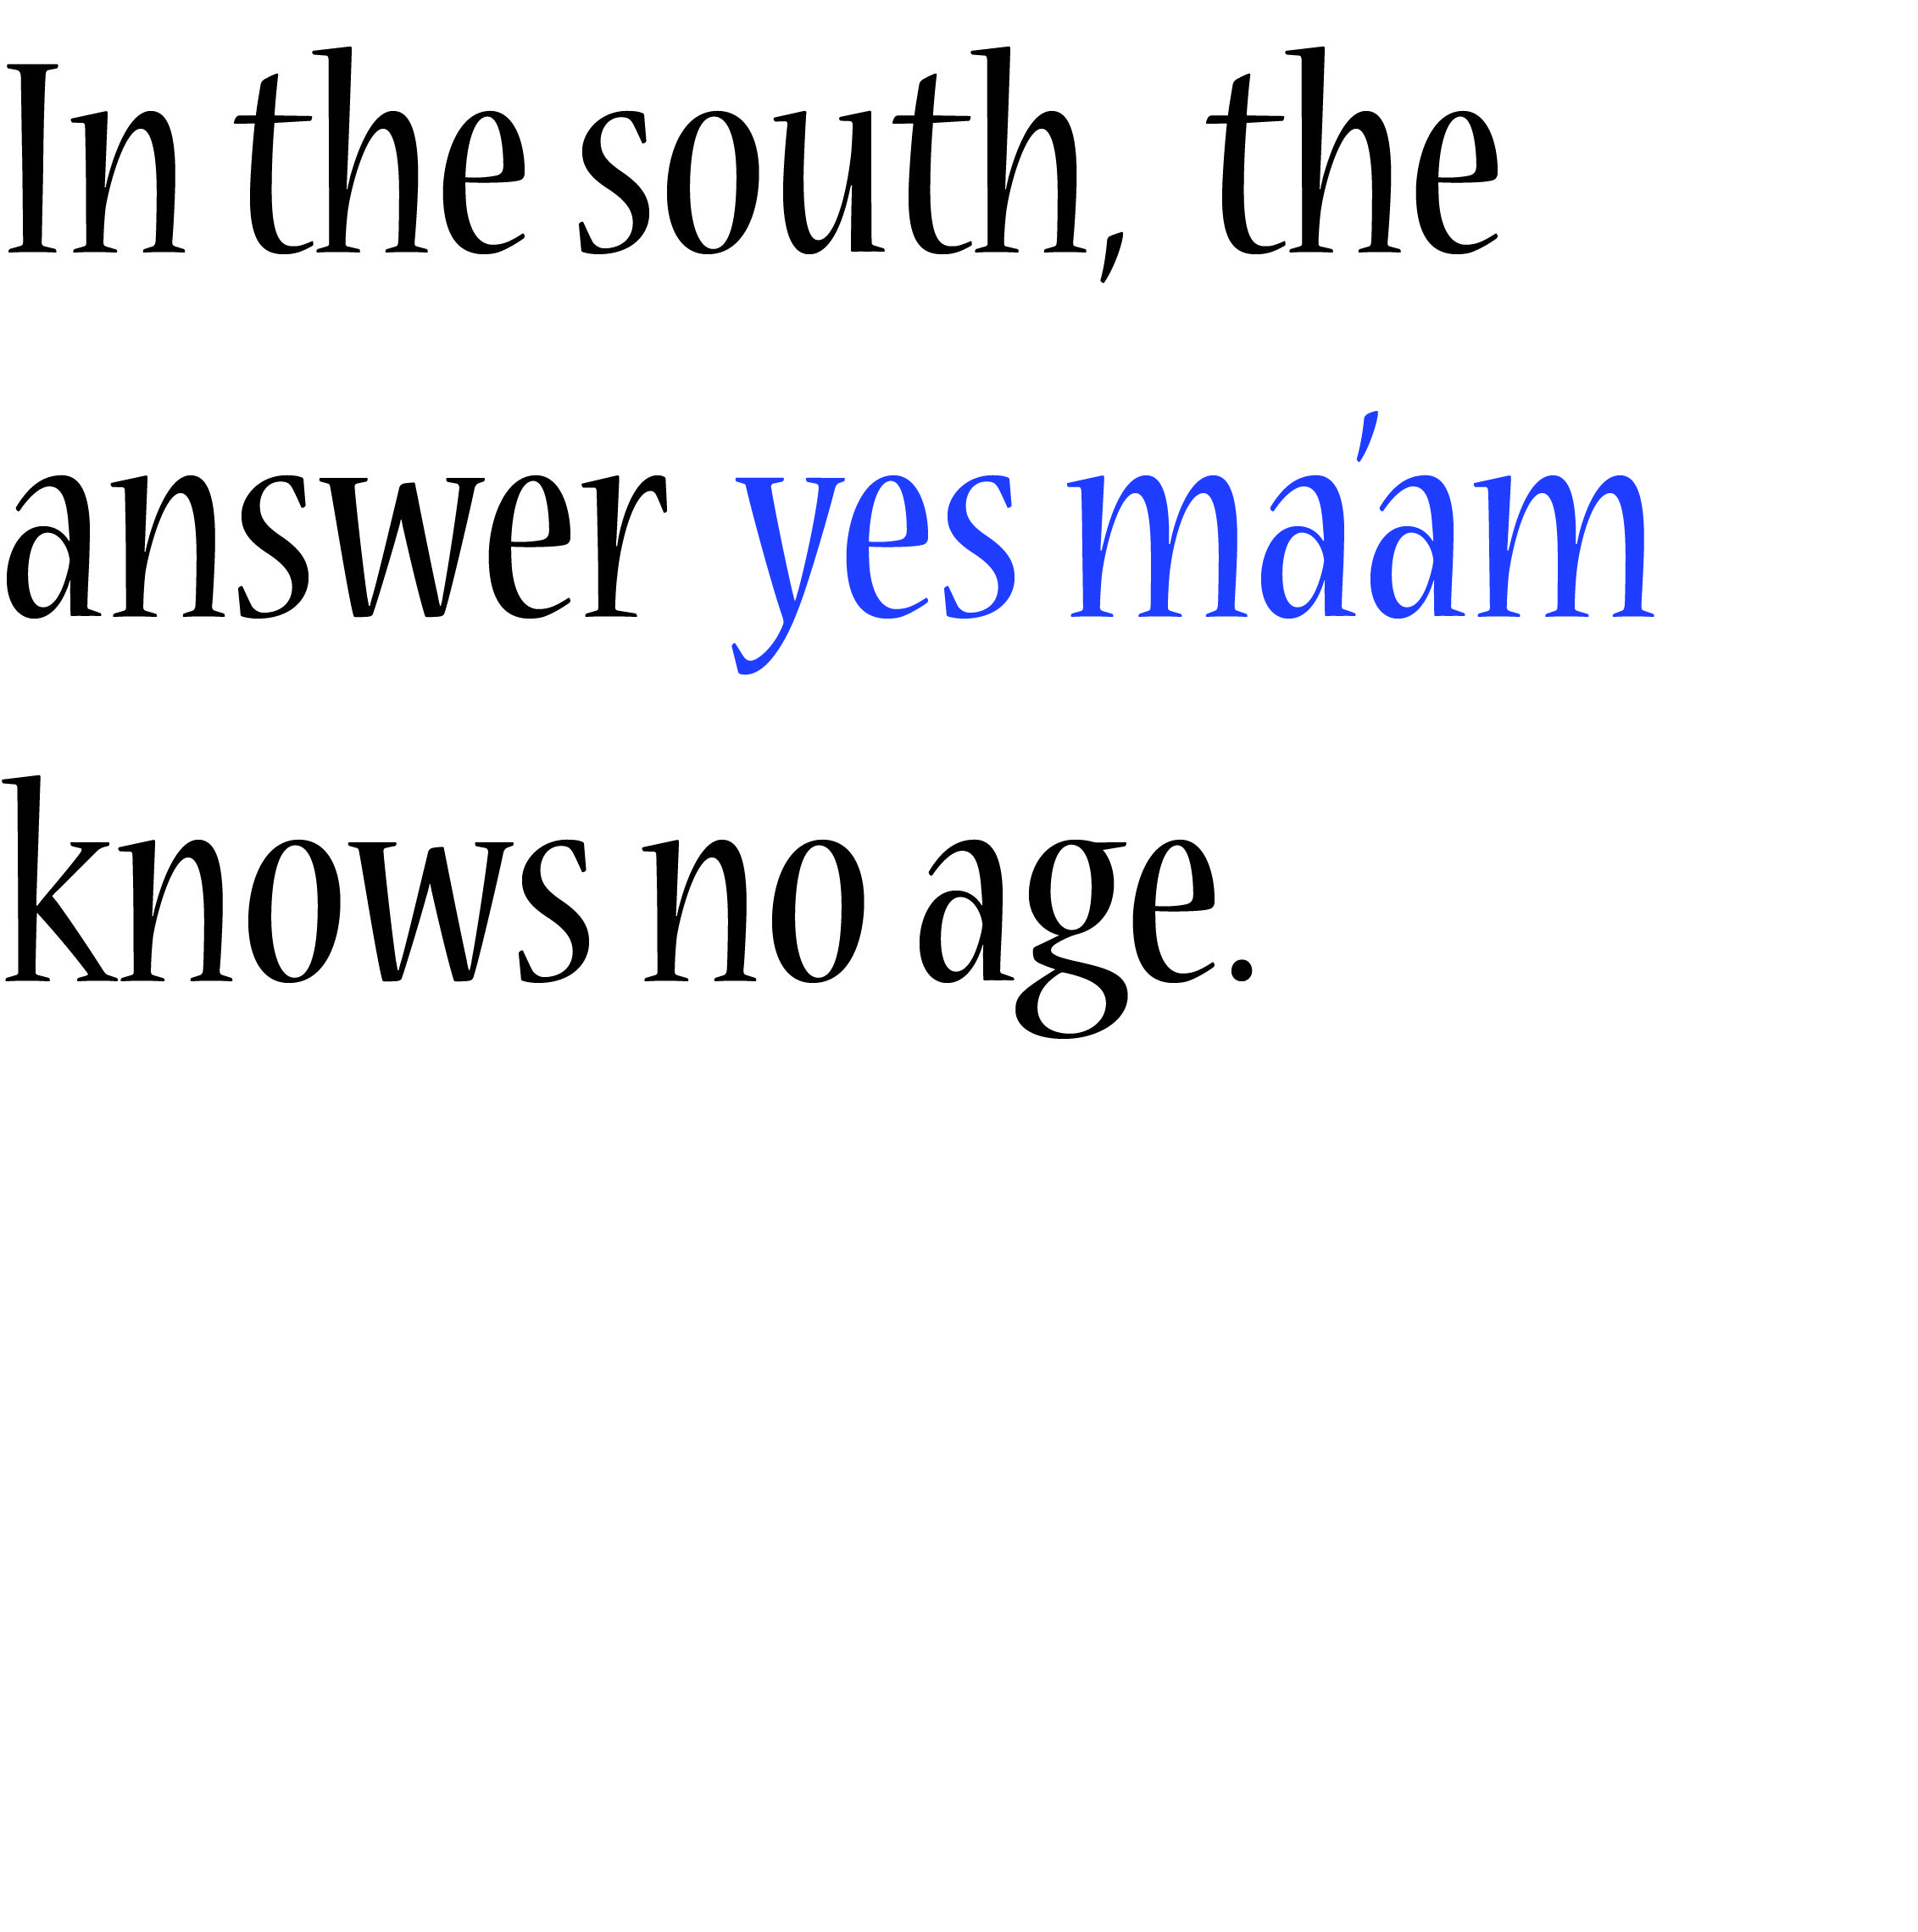 It's a southern thing..and so very true